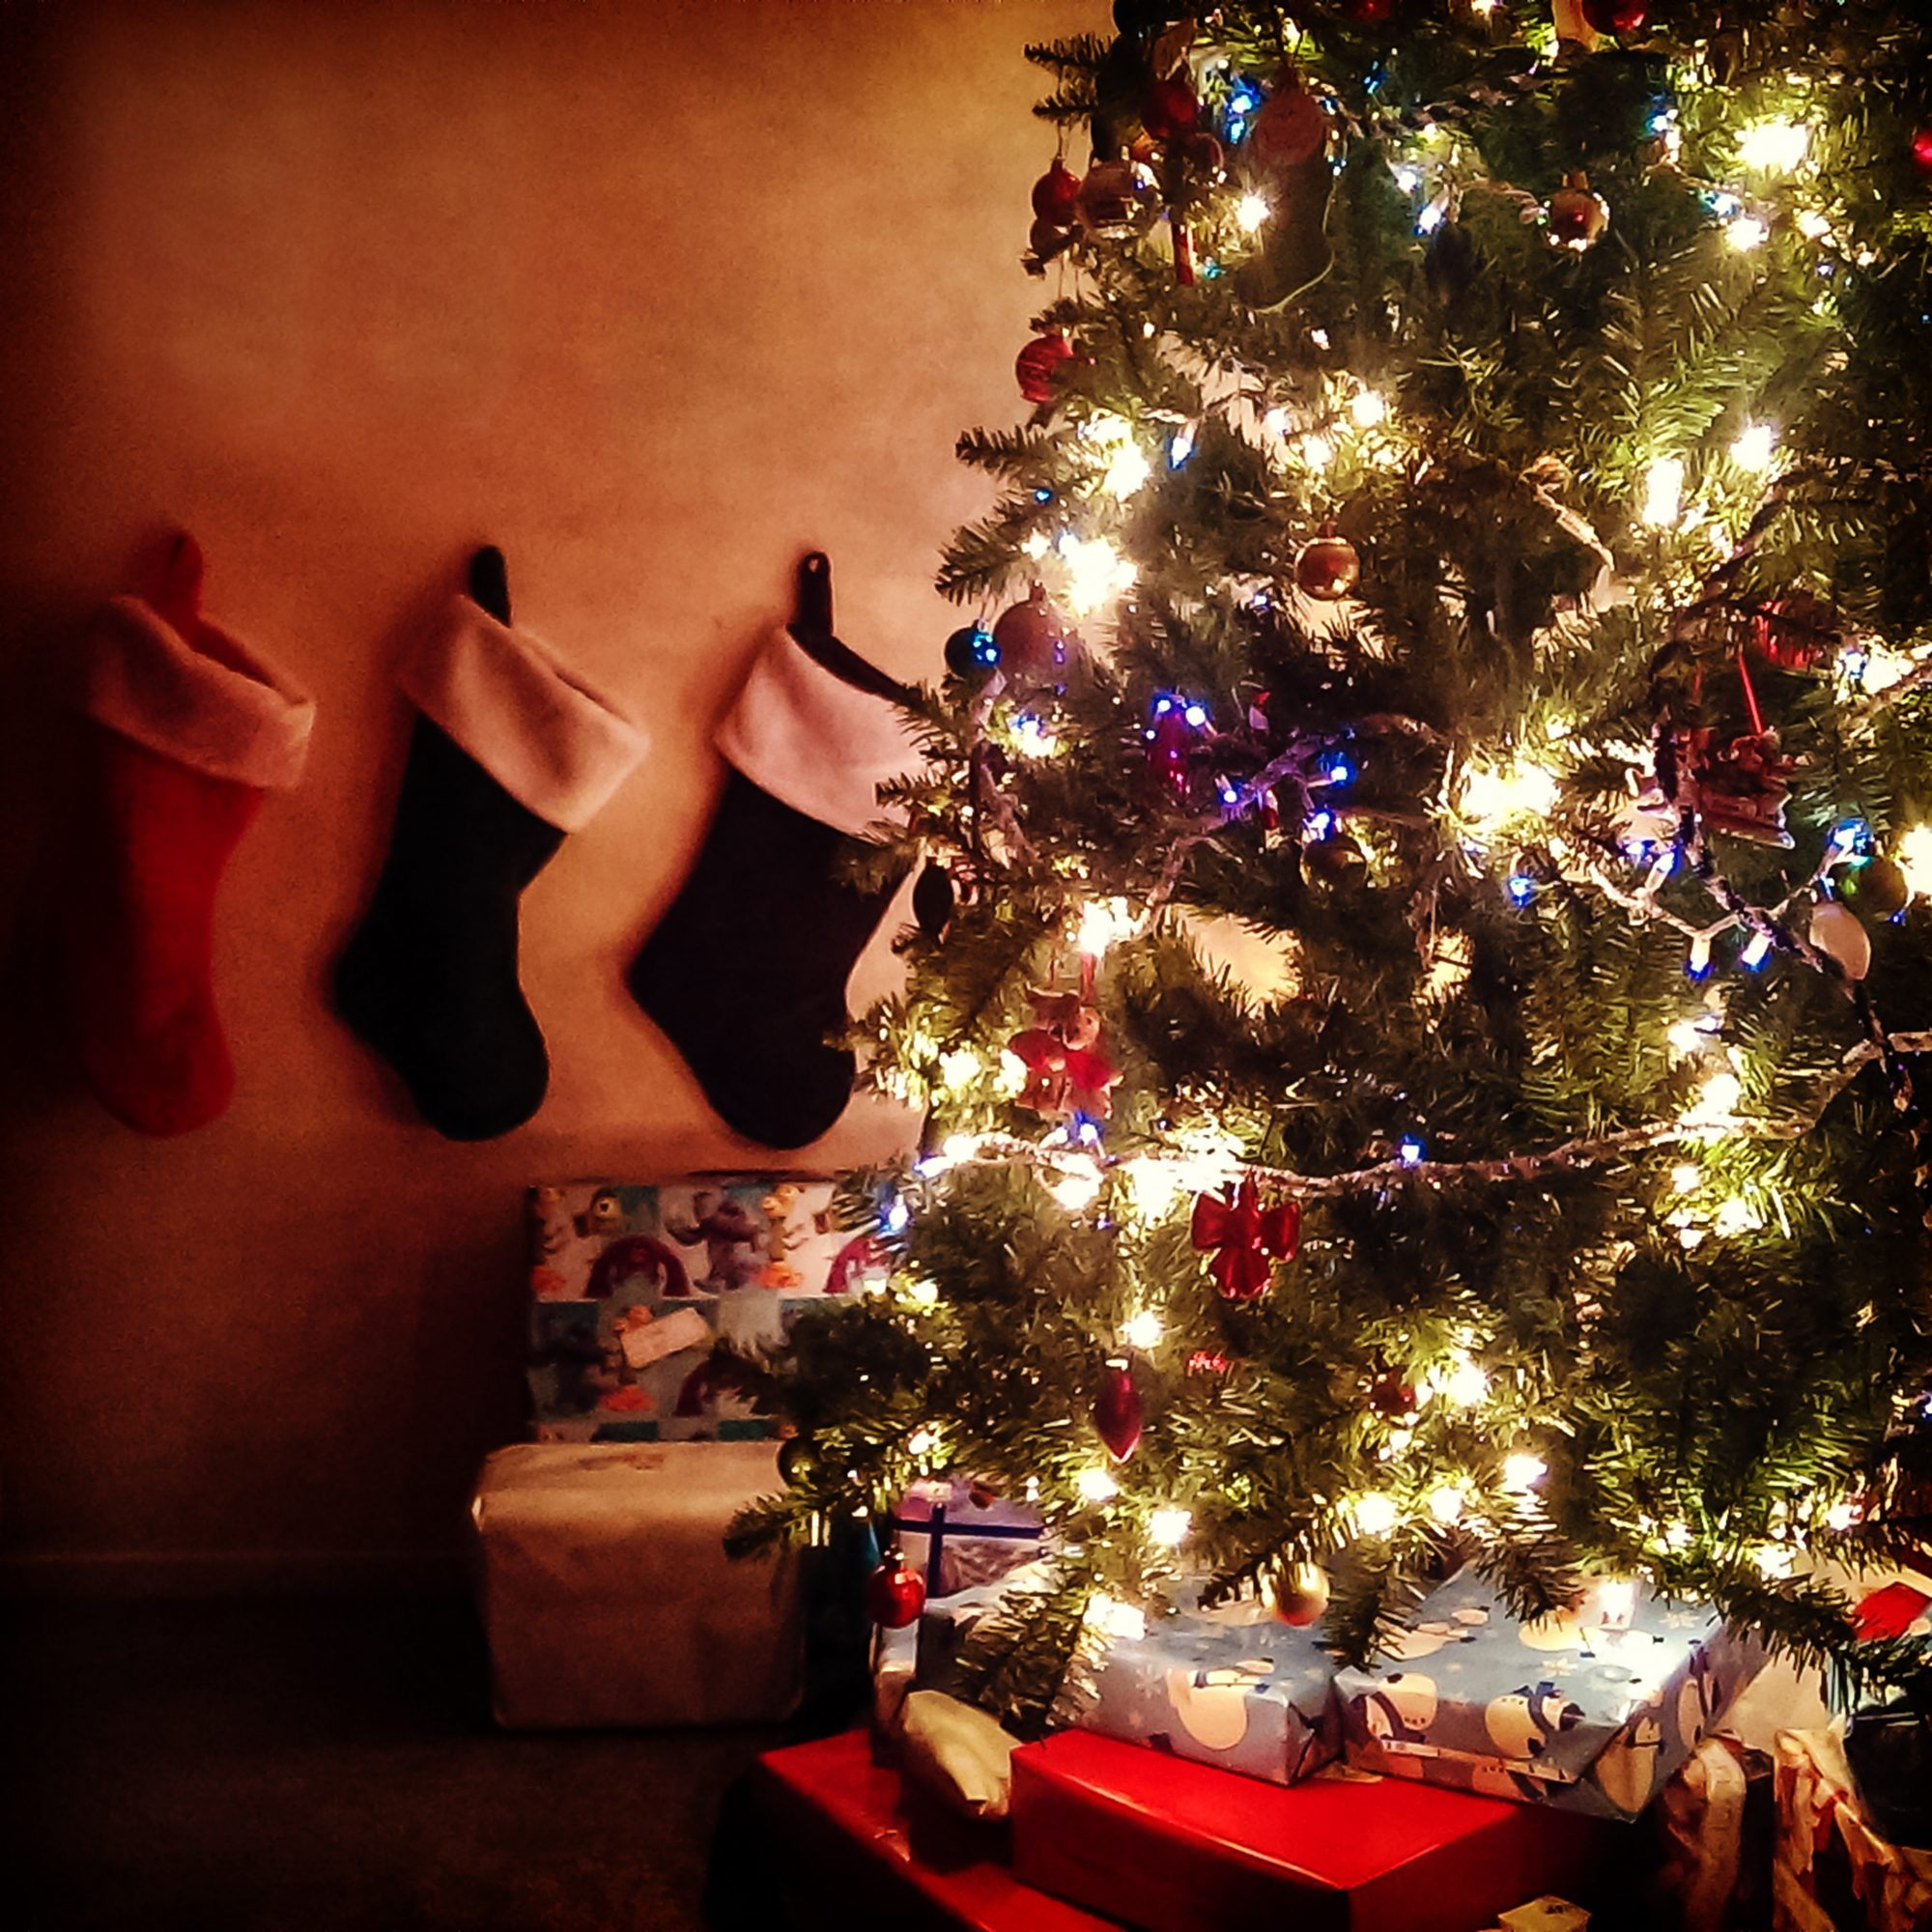 xmas tree with stockings